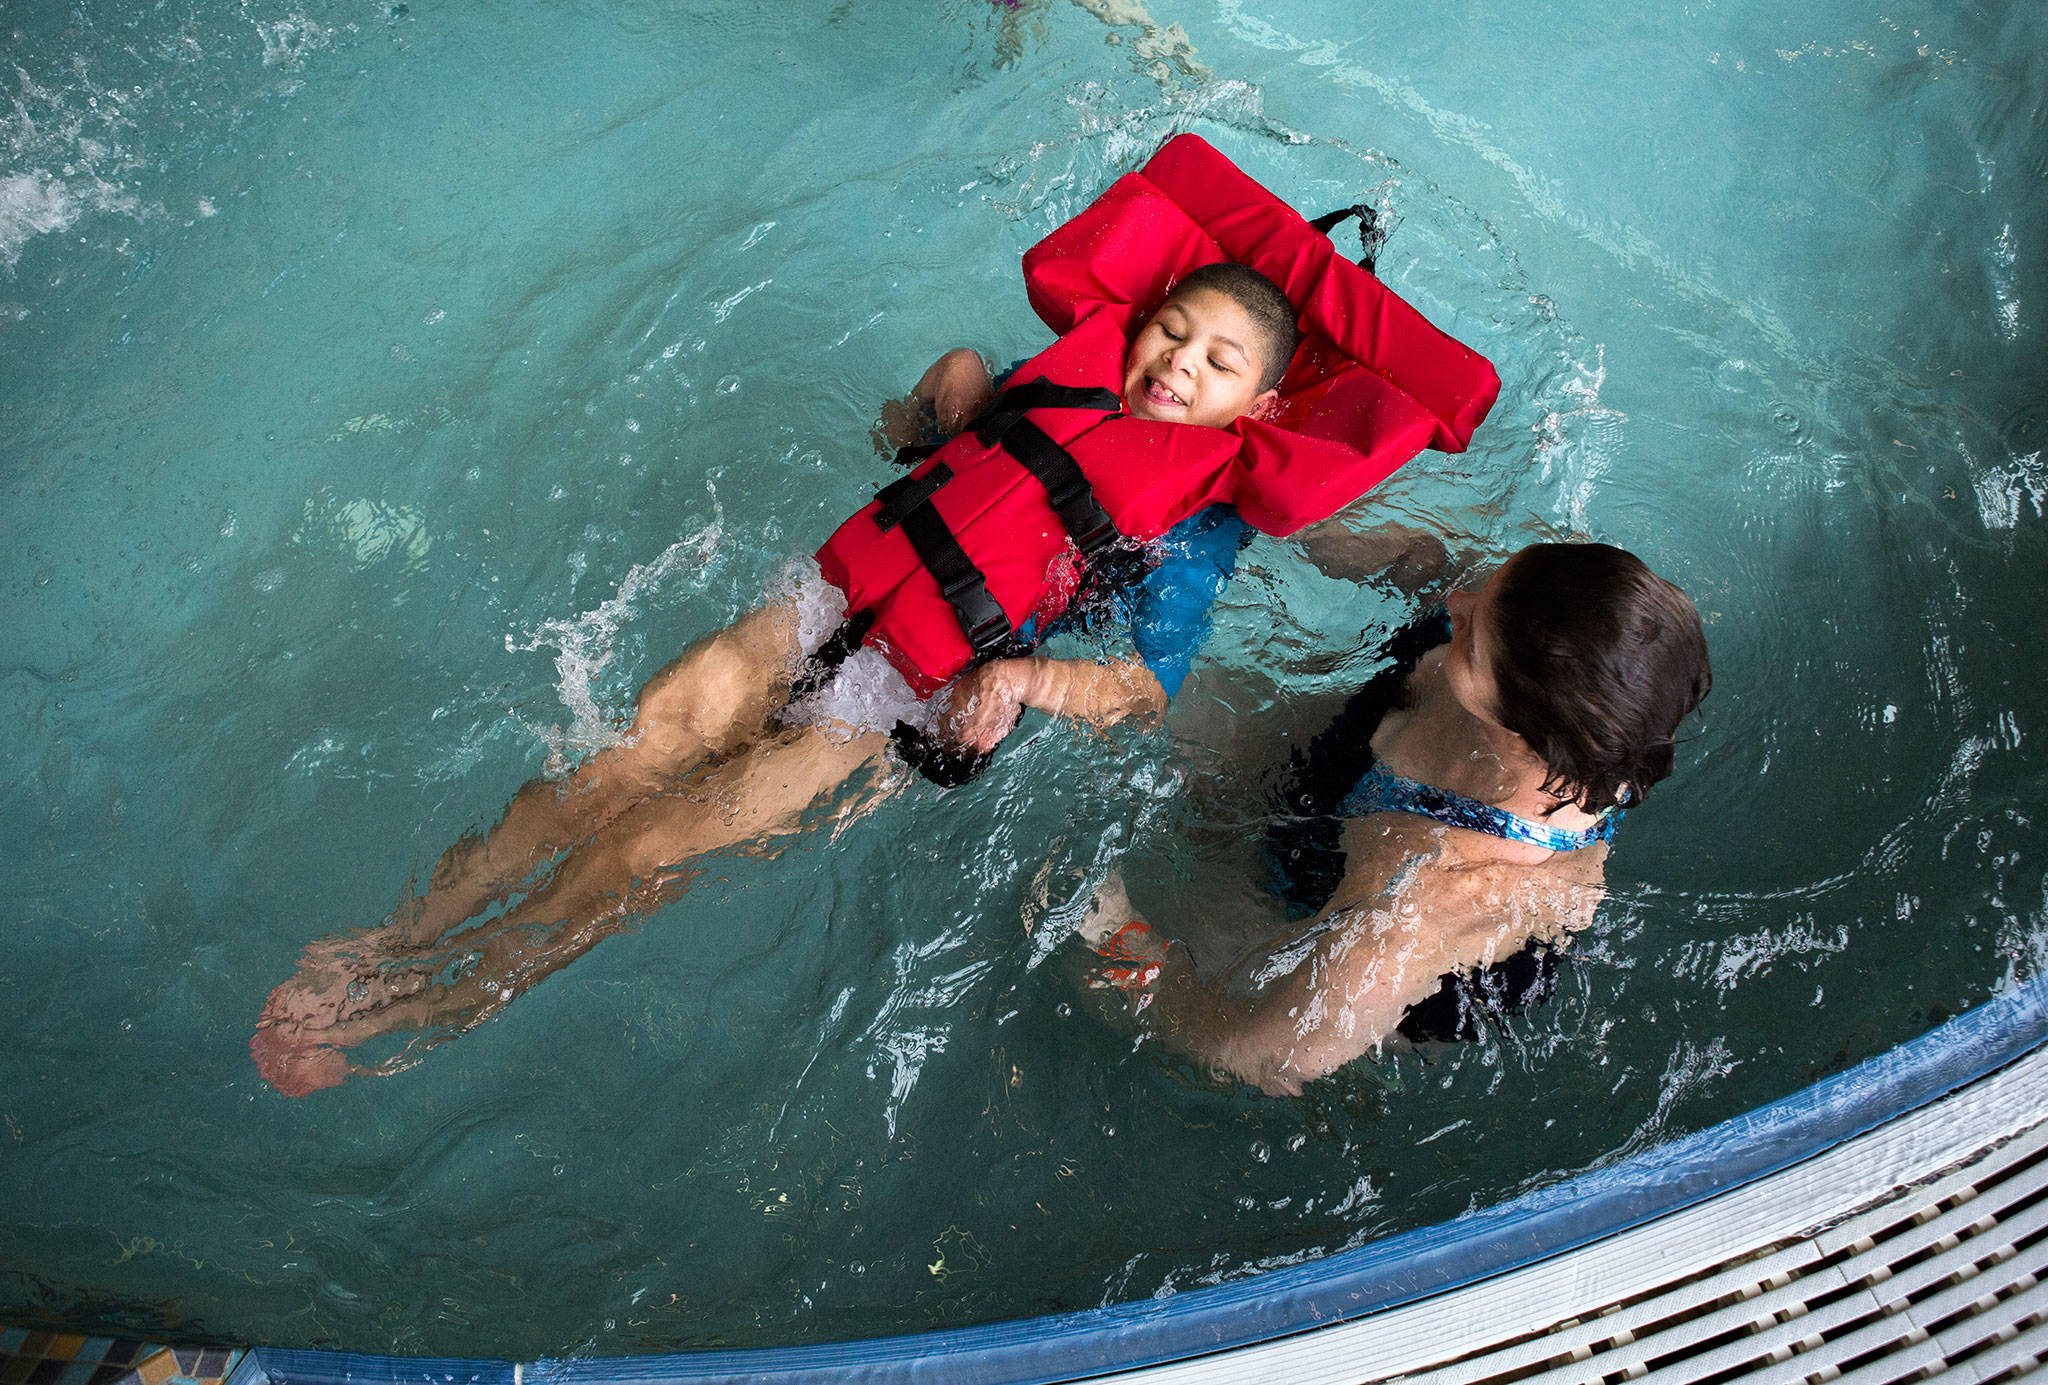 """<a href=""""https://www.heraldnet.com/news/doctors-said-he-might-not-live-past-5-he-just-turned-11/"""" target=""""_blank"""">Jamarious Carpenter</a>, 11, is guided through the water by his mother, Ginger Carpenter, during his birthday celebration at the Lynnwood Recreation Center & Pool on Jan. 20 in Lynnwood. (Olivia Vanni / The Herald)"""